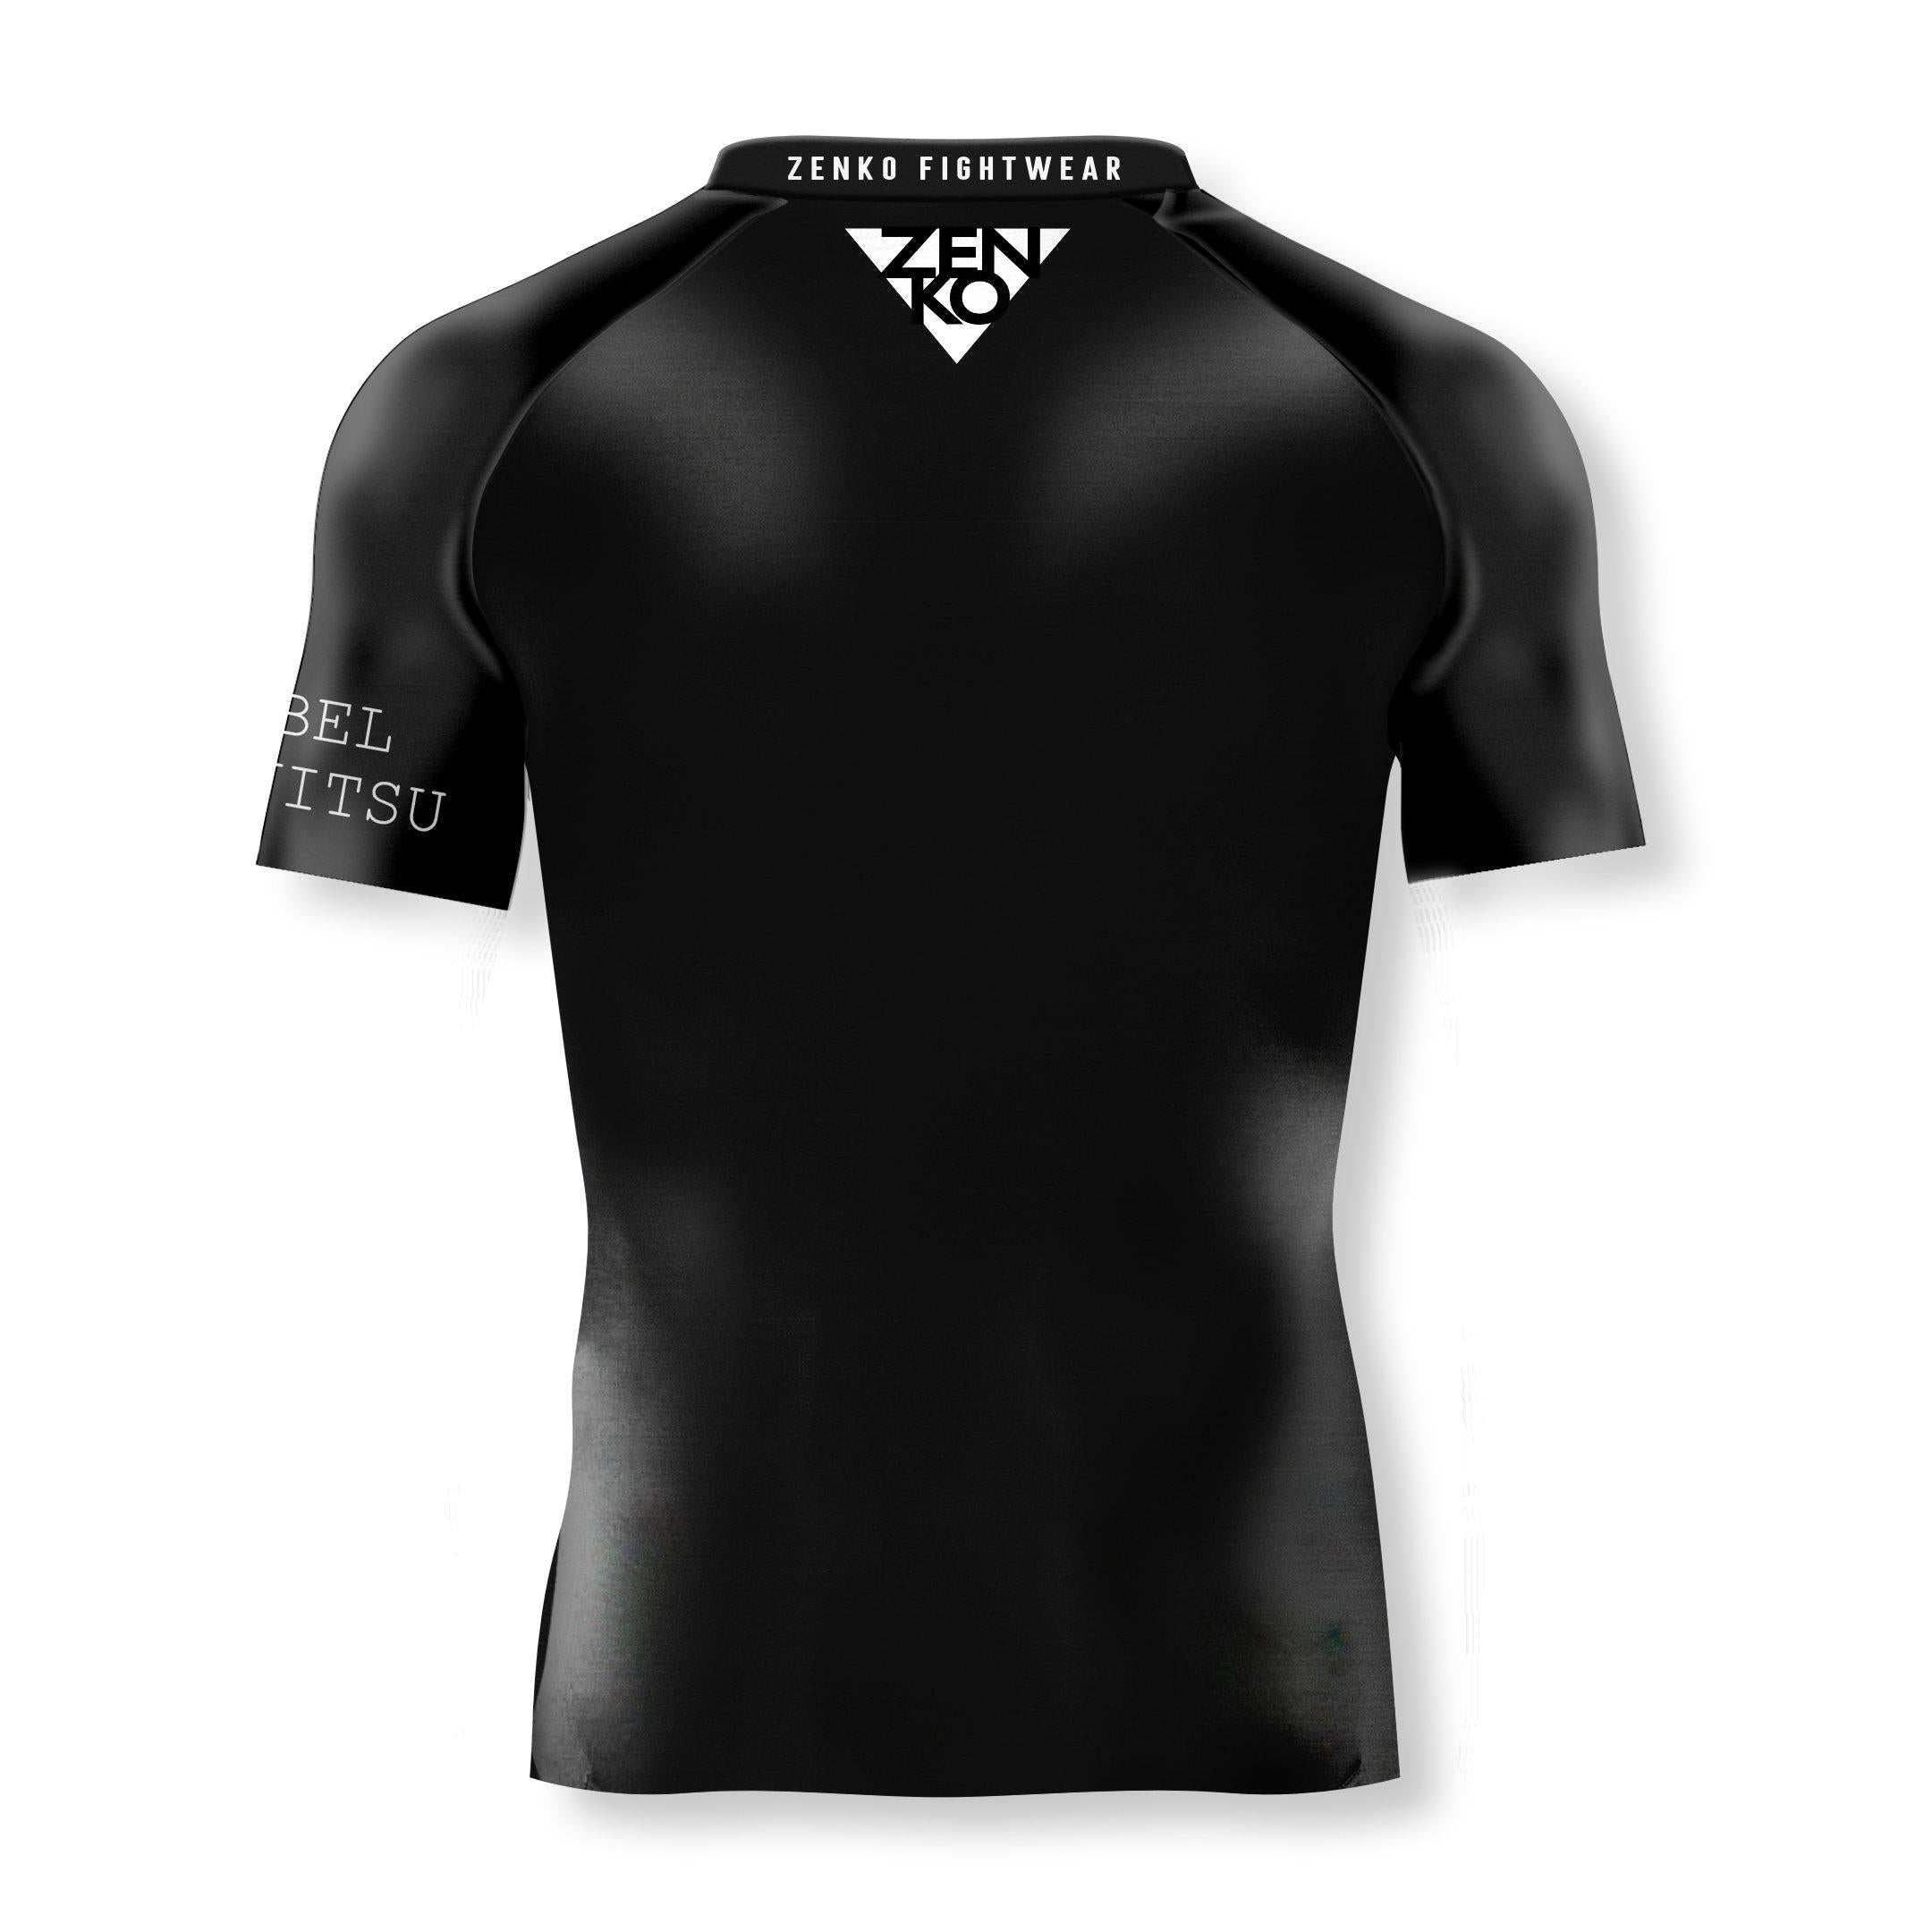 Rebel JiuJitsu Short Sleeve Rashguard V1 - Zenko Fightwear